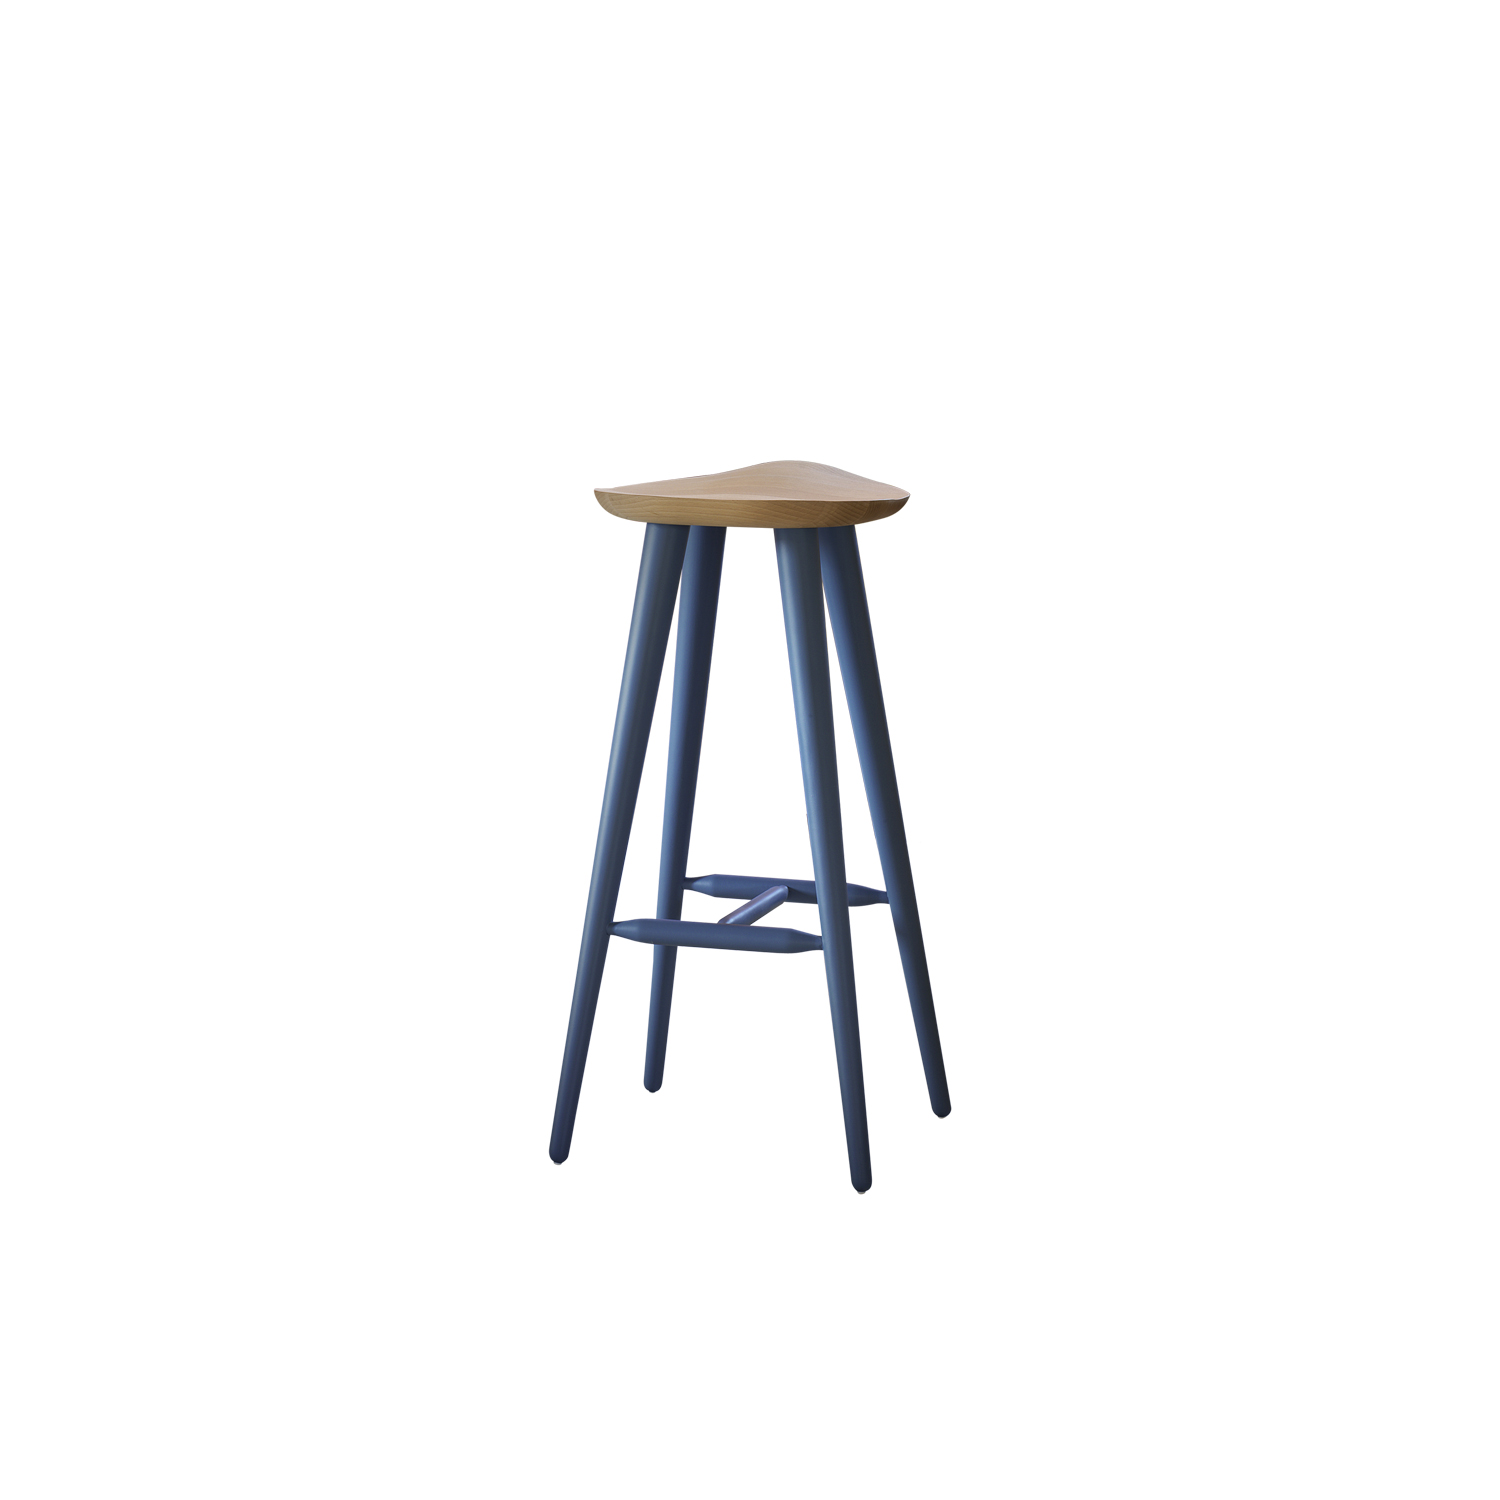 "Lechuck Stool - The thin but strong coloured legs hold up a seat made of oiled beech with a comfortable shape of ""bicycle saddle"". The stool is ideally suited to any environment.